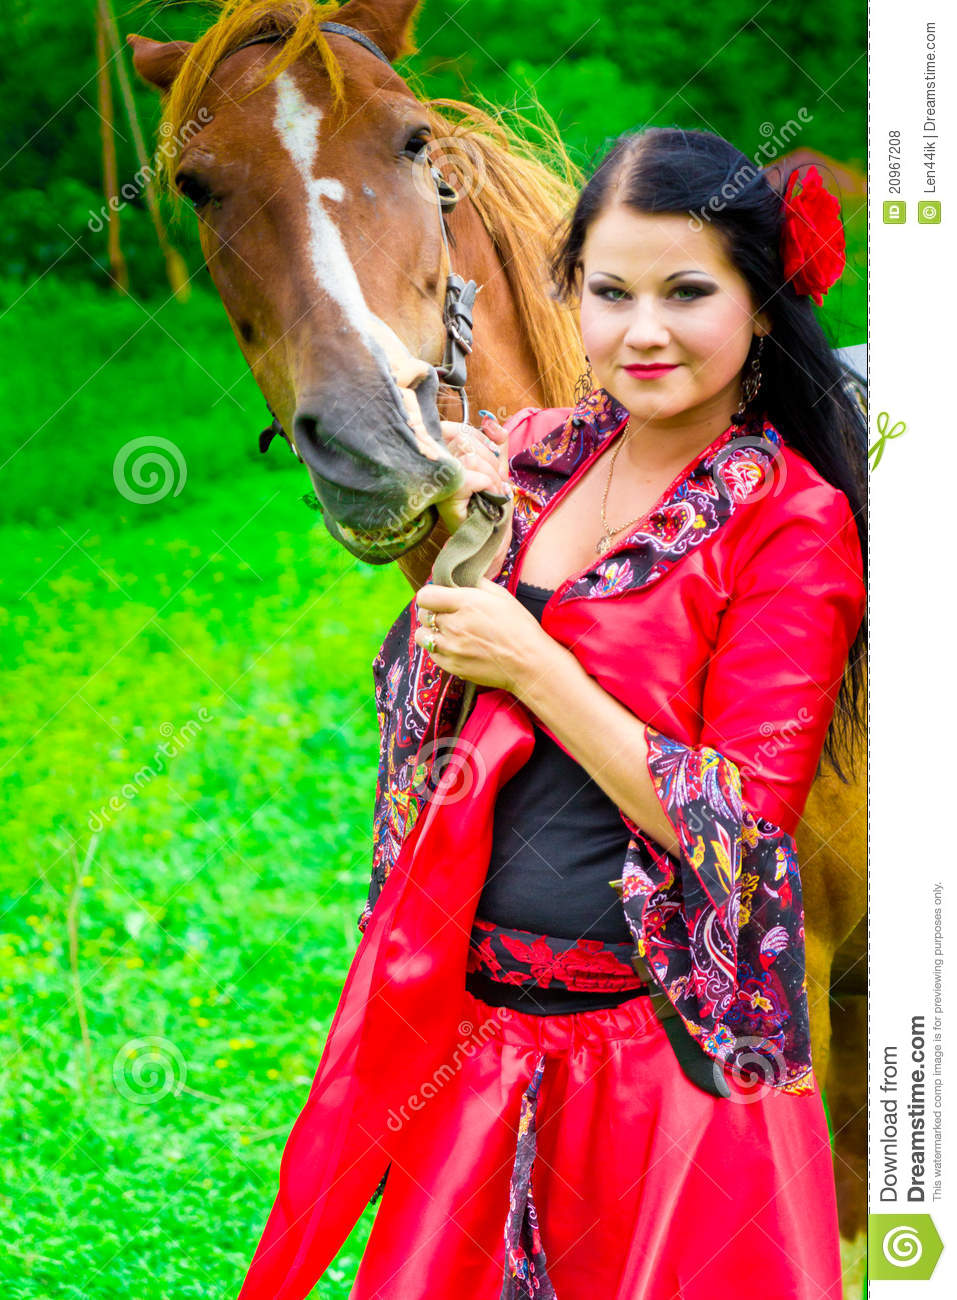 Girl With The Blog: Beautiful Gypsy Girl With A Horse Stock Photo